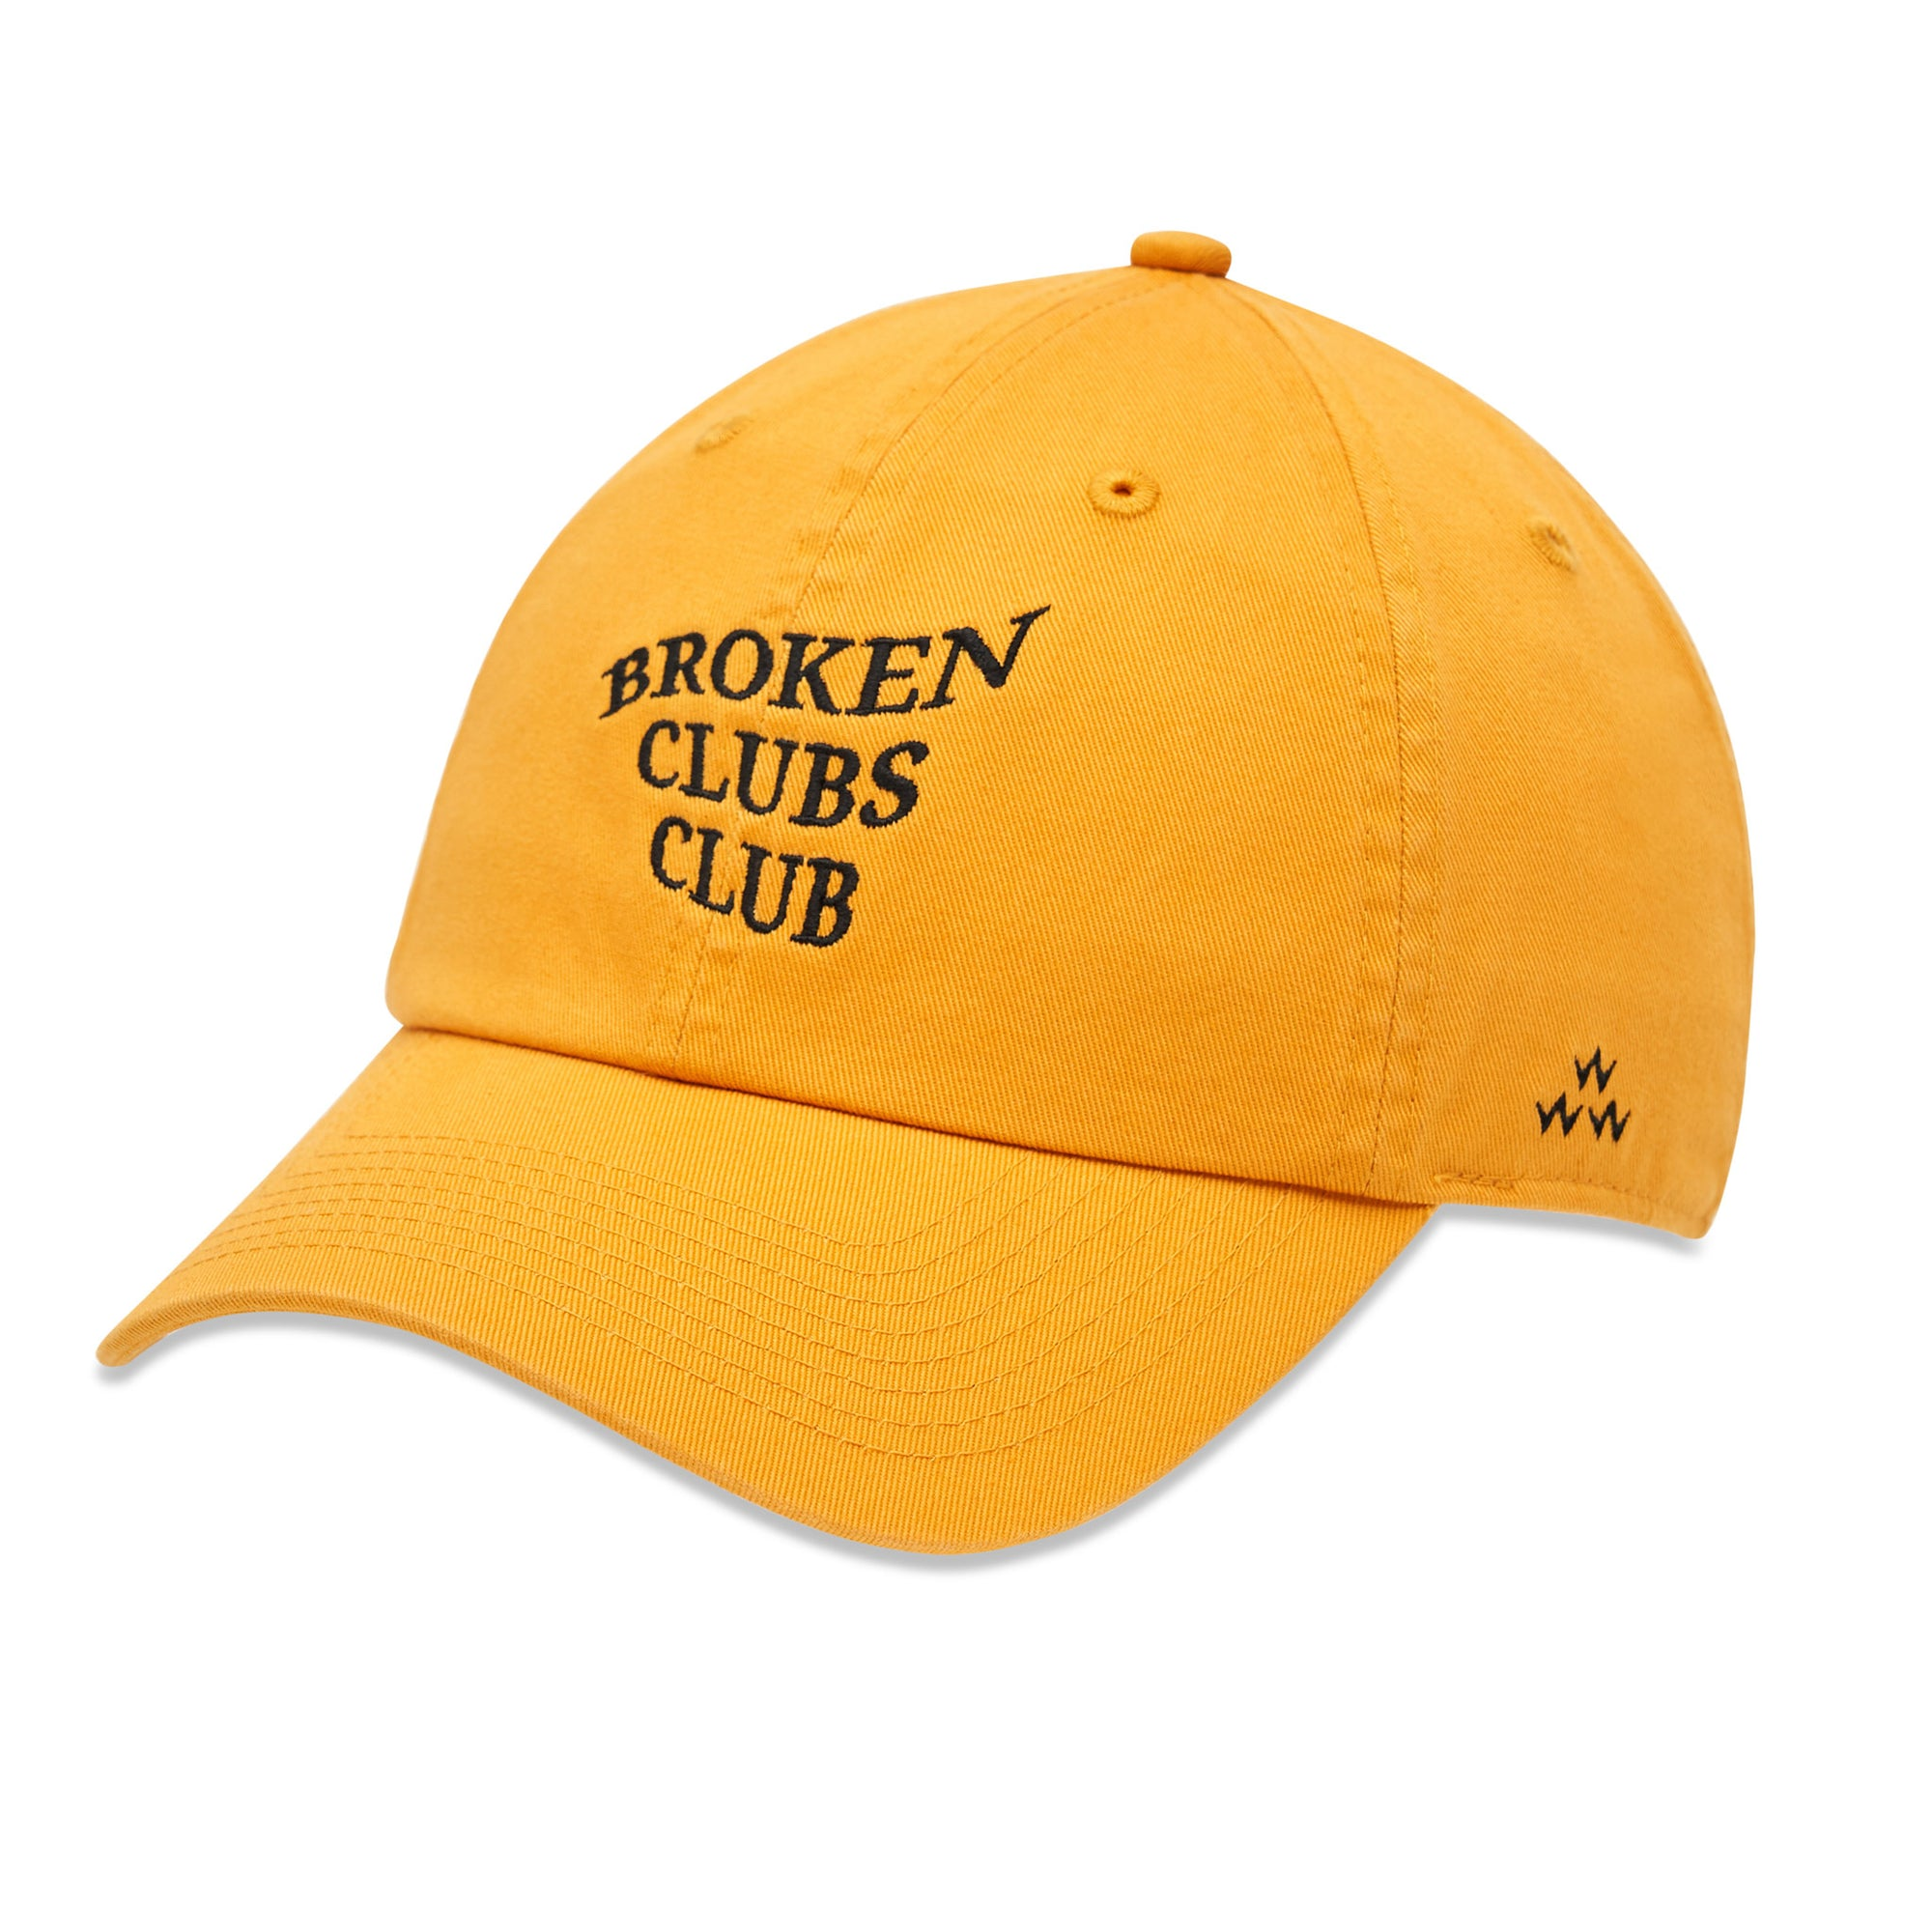 birds-of-condor-yellow-golf-broken-clubs-club-dad-cap-hat-front